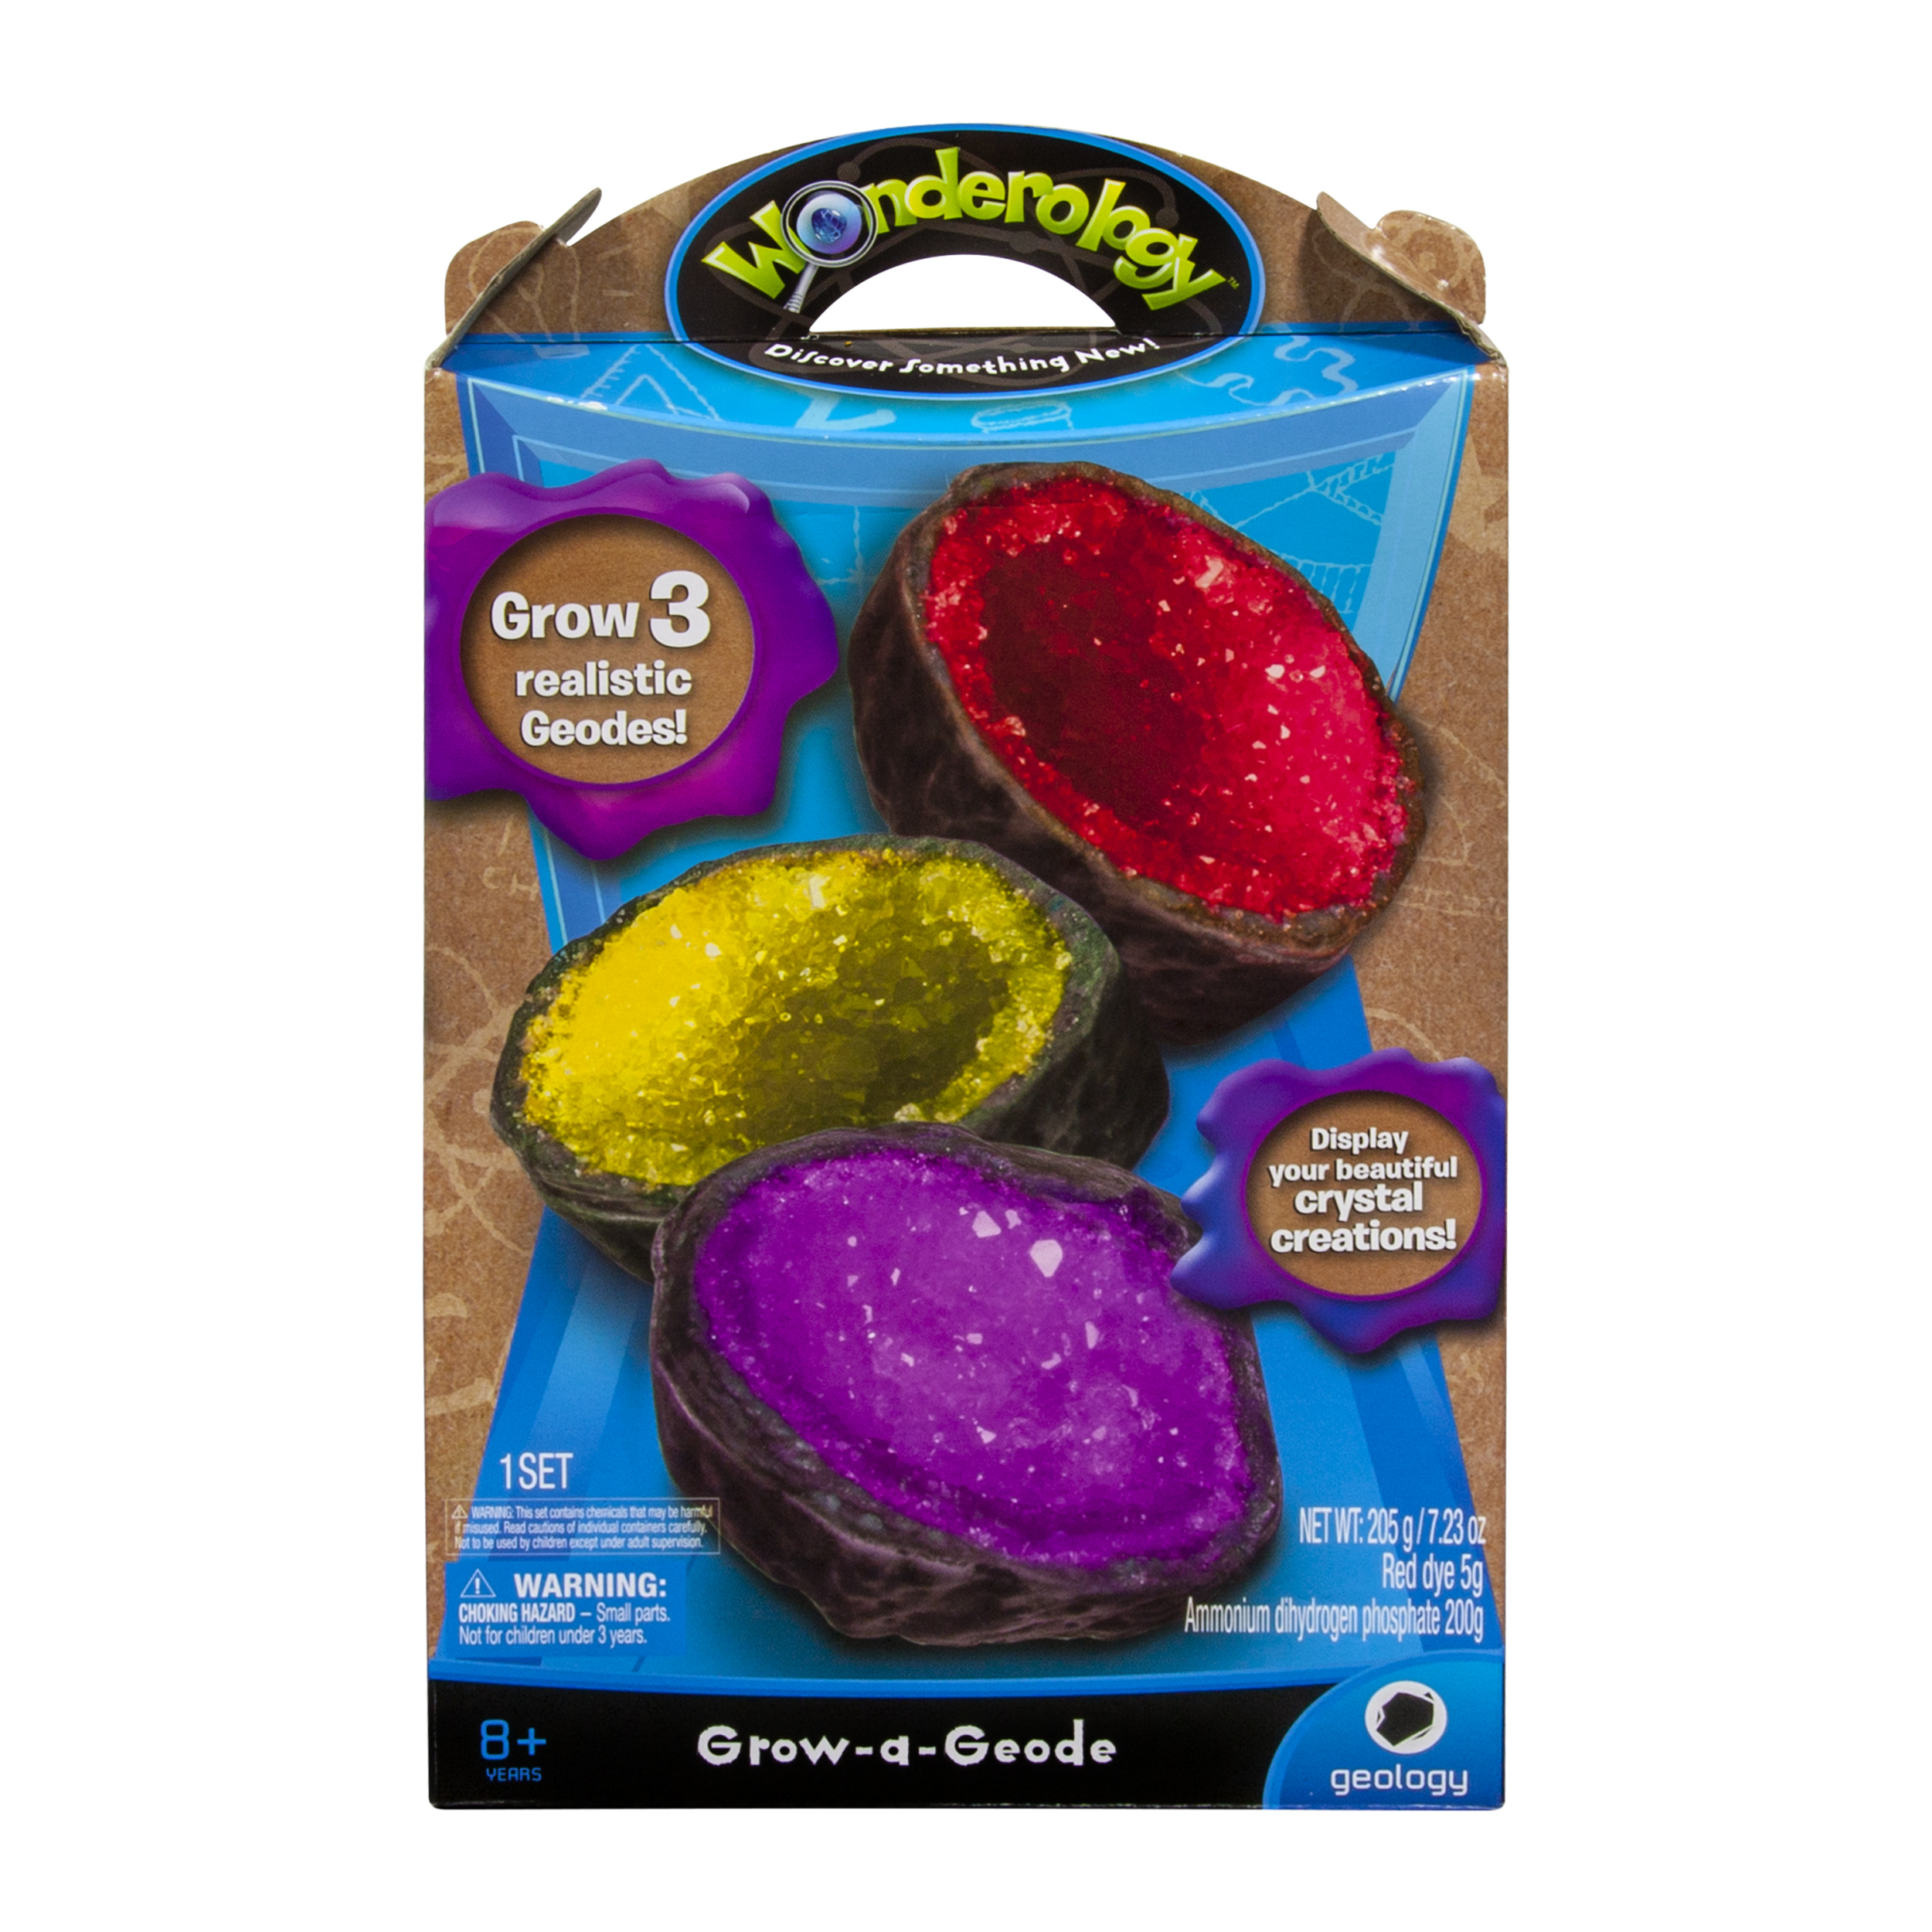 wonderology science kit grow-a-geode